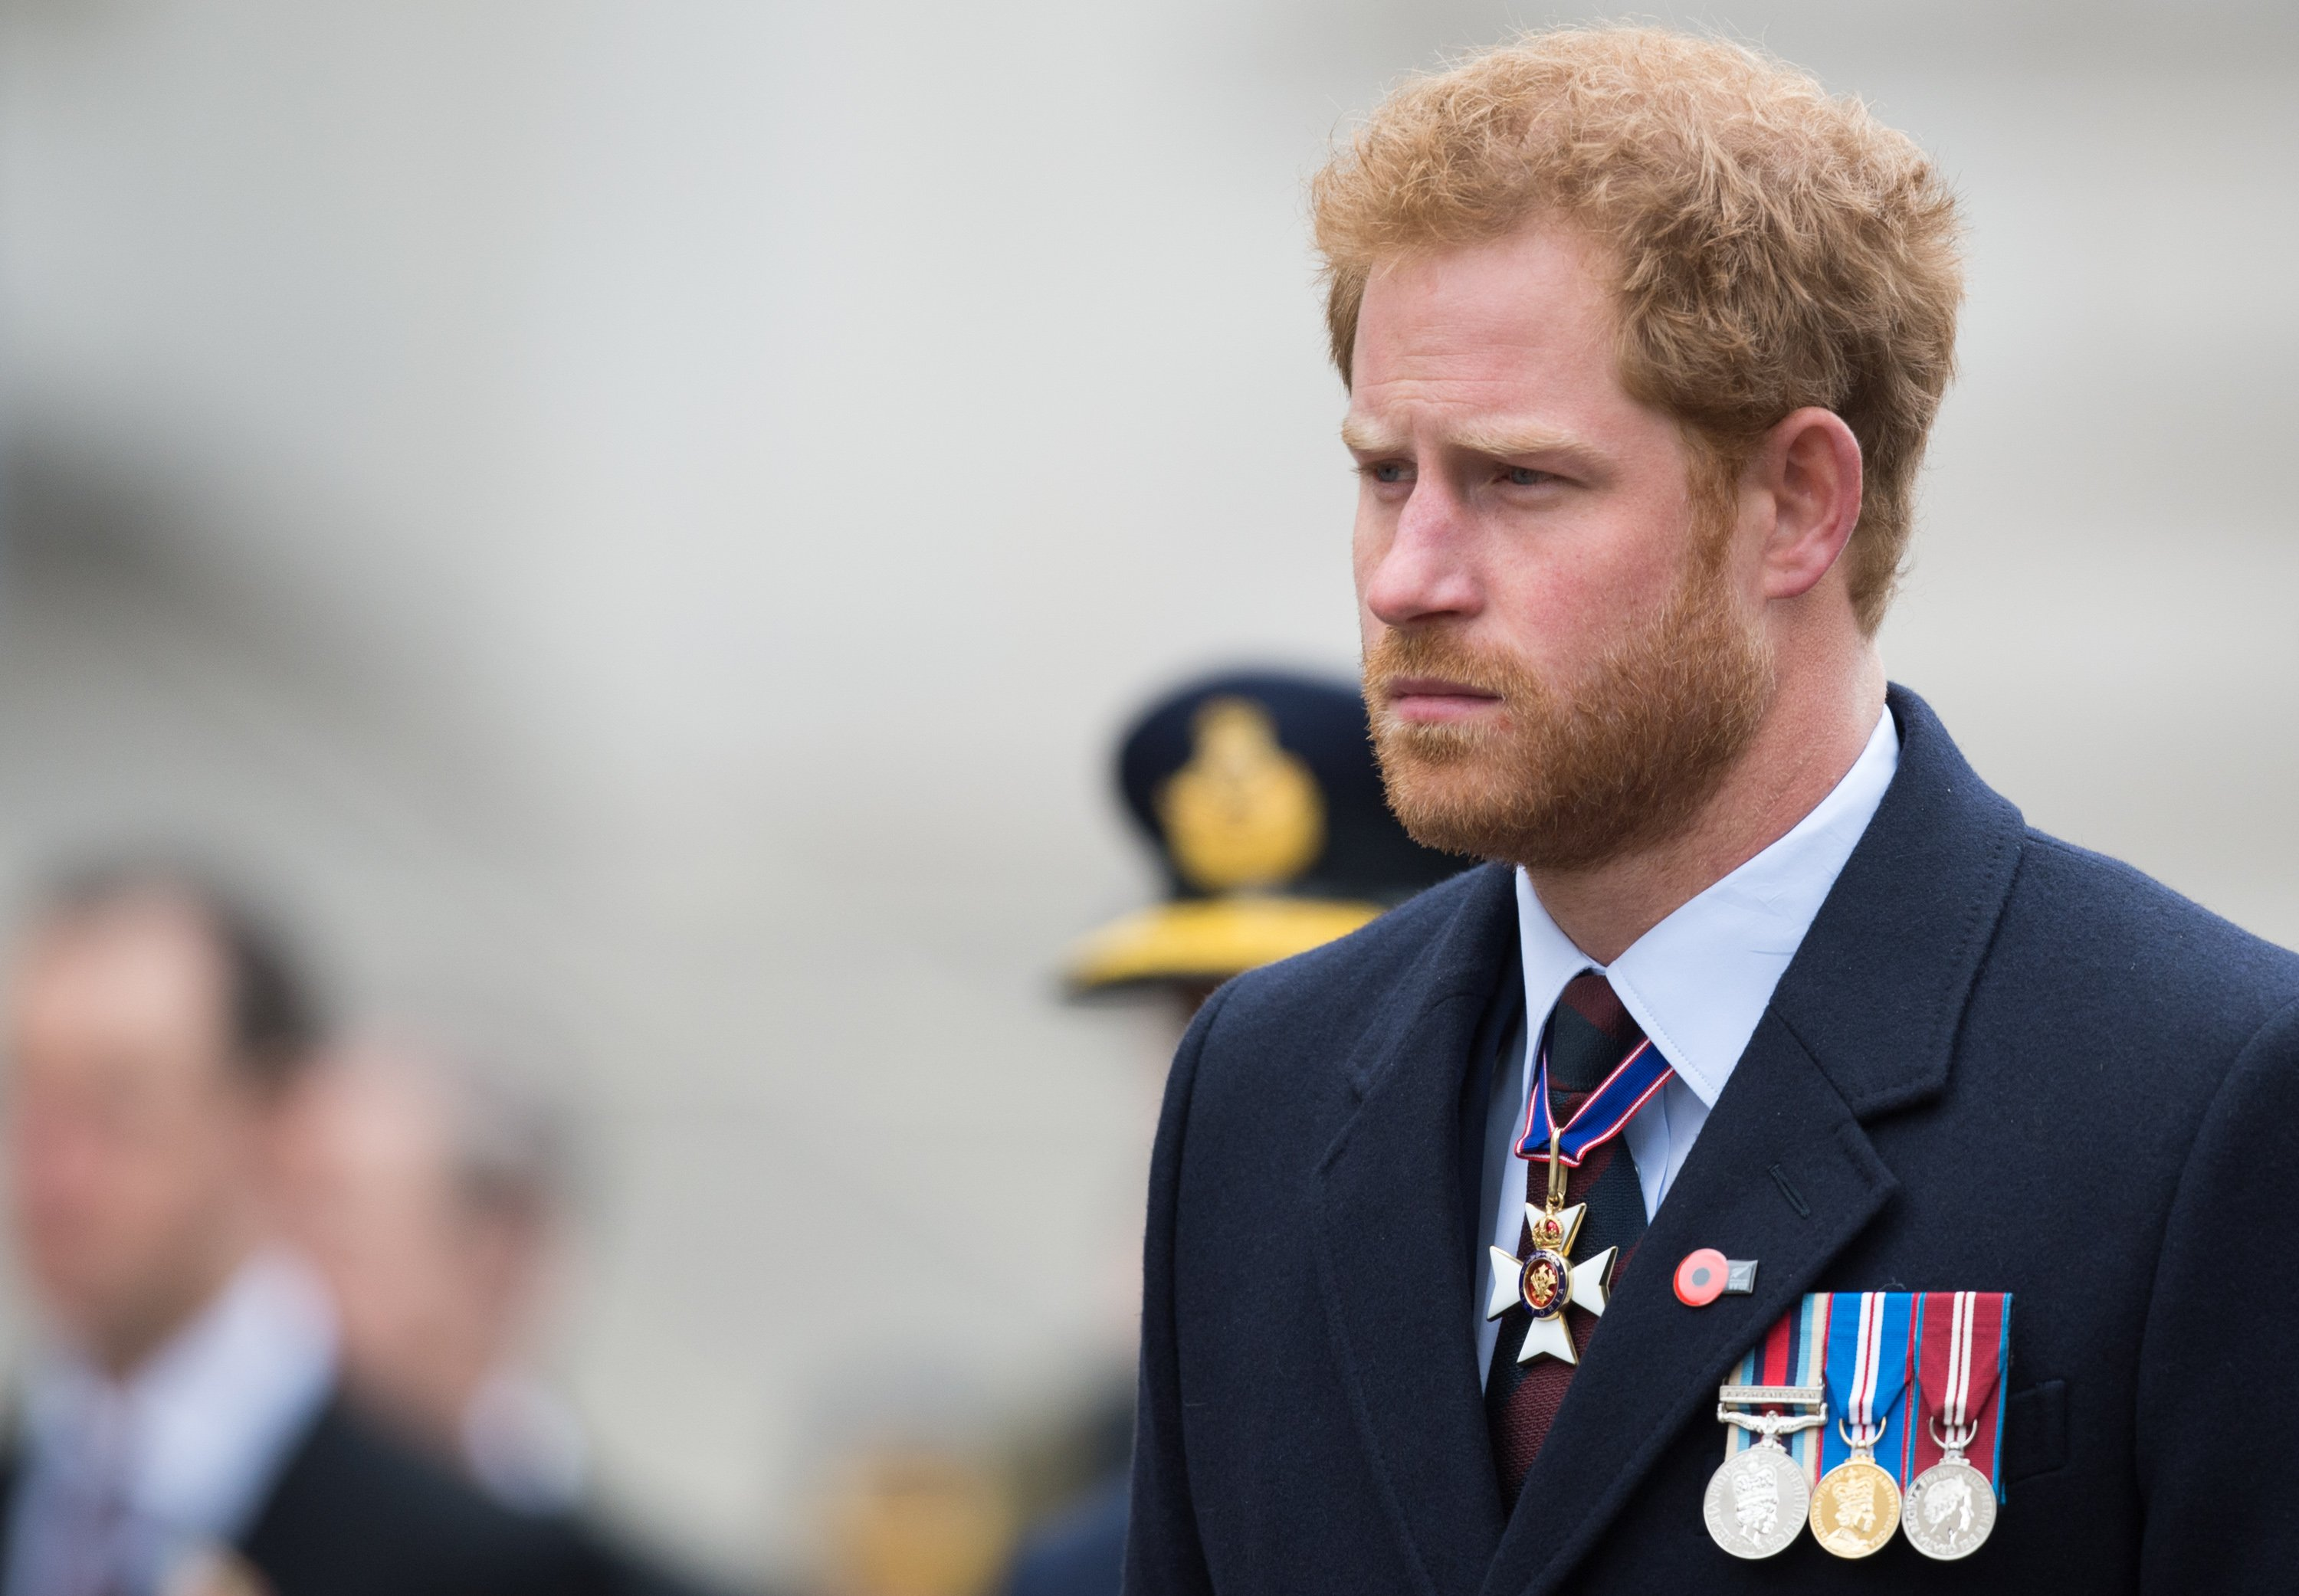 Prince Harry at a dawn service at Wellington Arch for Anzac Day commemorations, England, 2016. | Photo: Getty Images